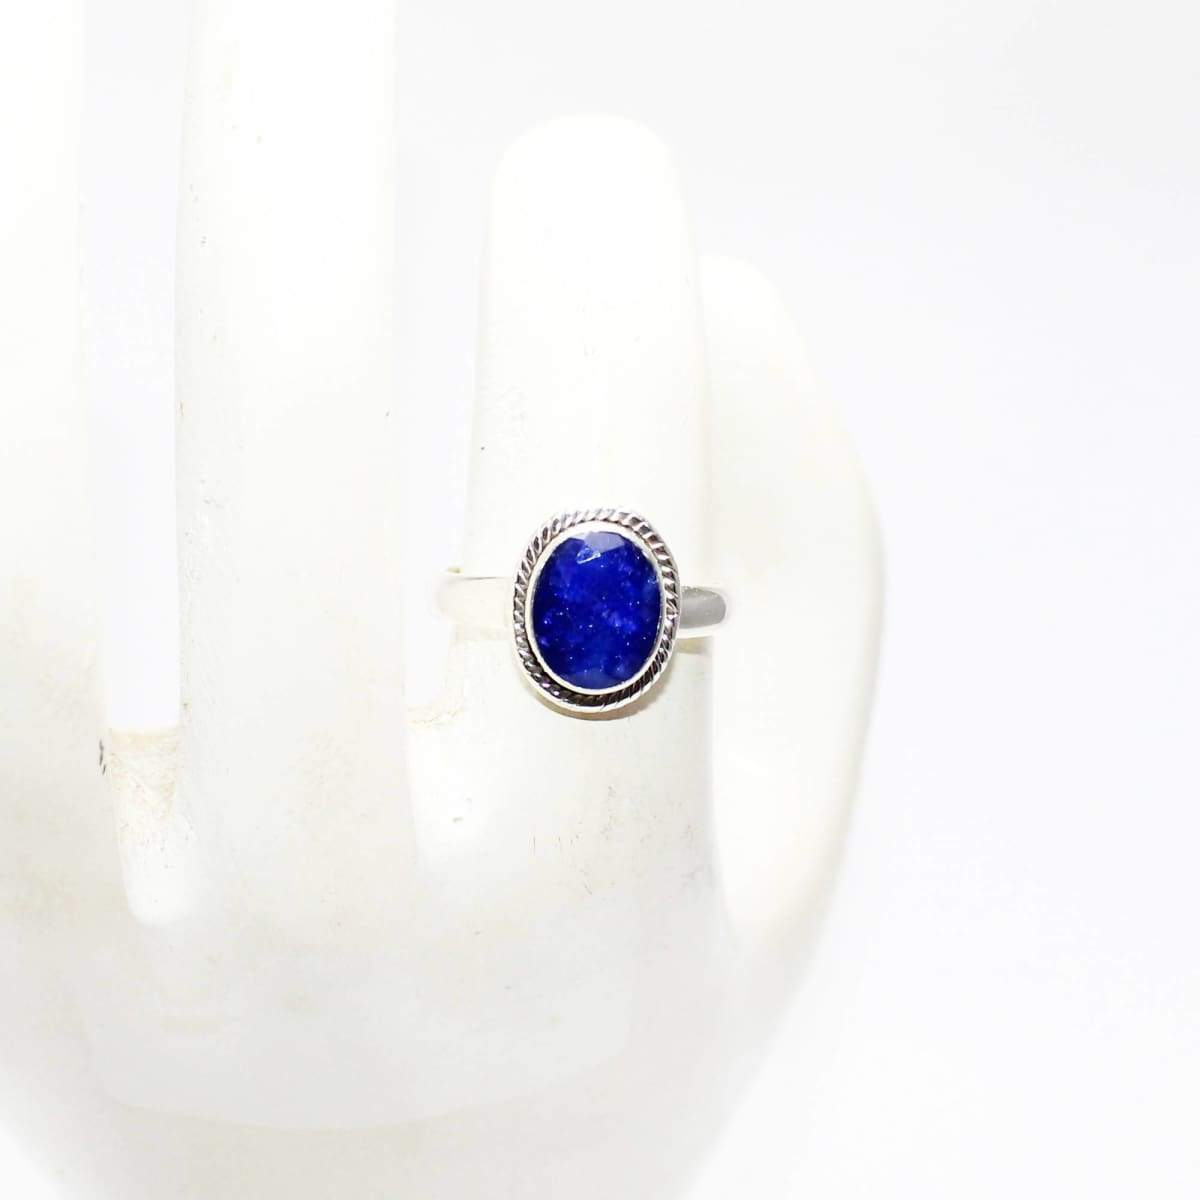 Rings Excellent NATURAL INDIAN BLUE SAPPHIRE Gemstone Ring Birthstone 925 Sterling Silver Fashion Handmade All Size Gift